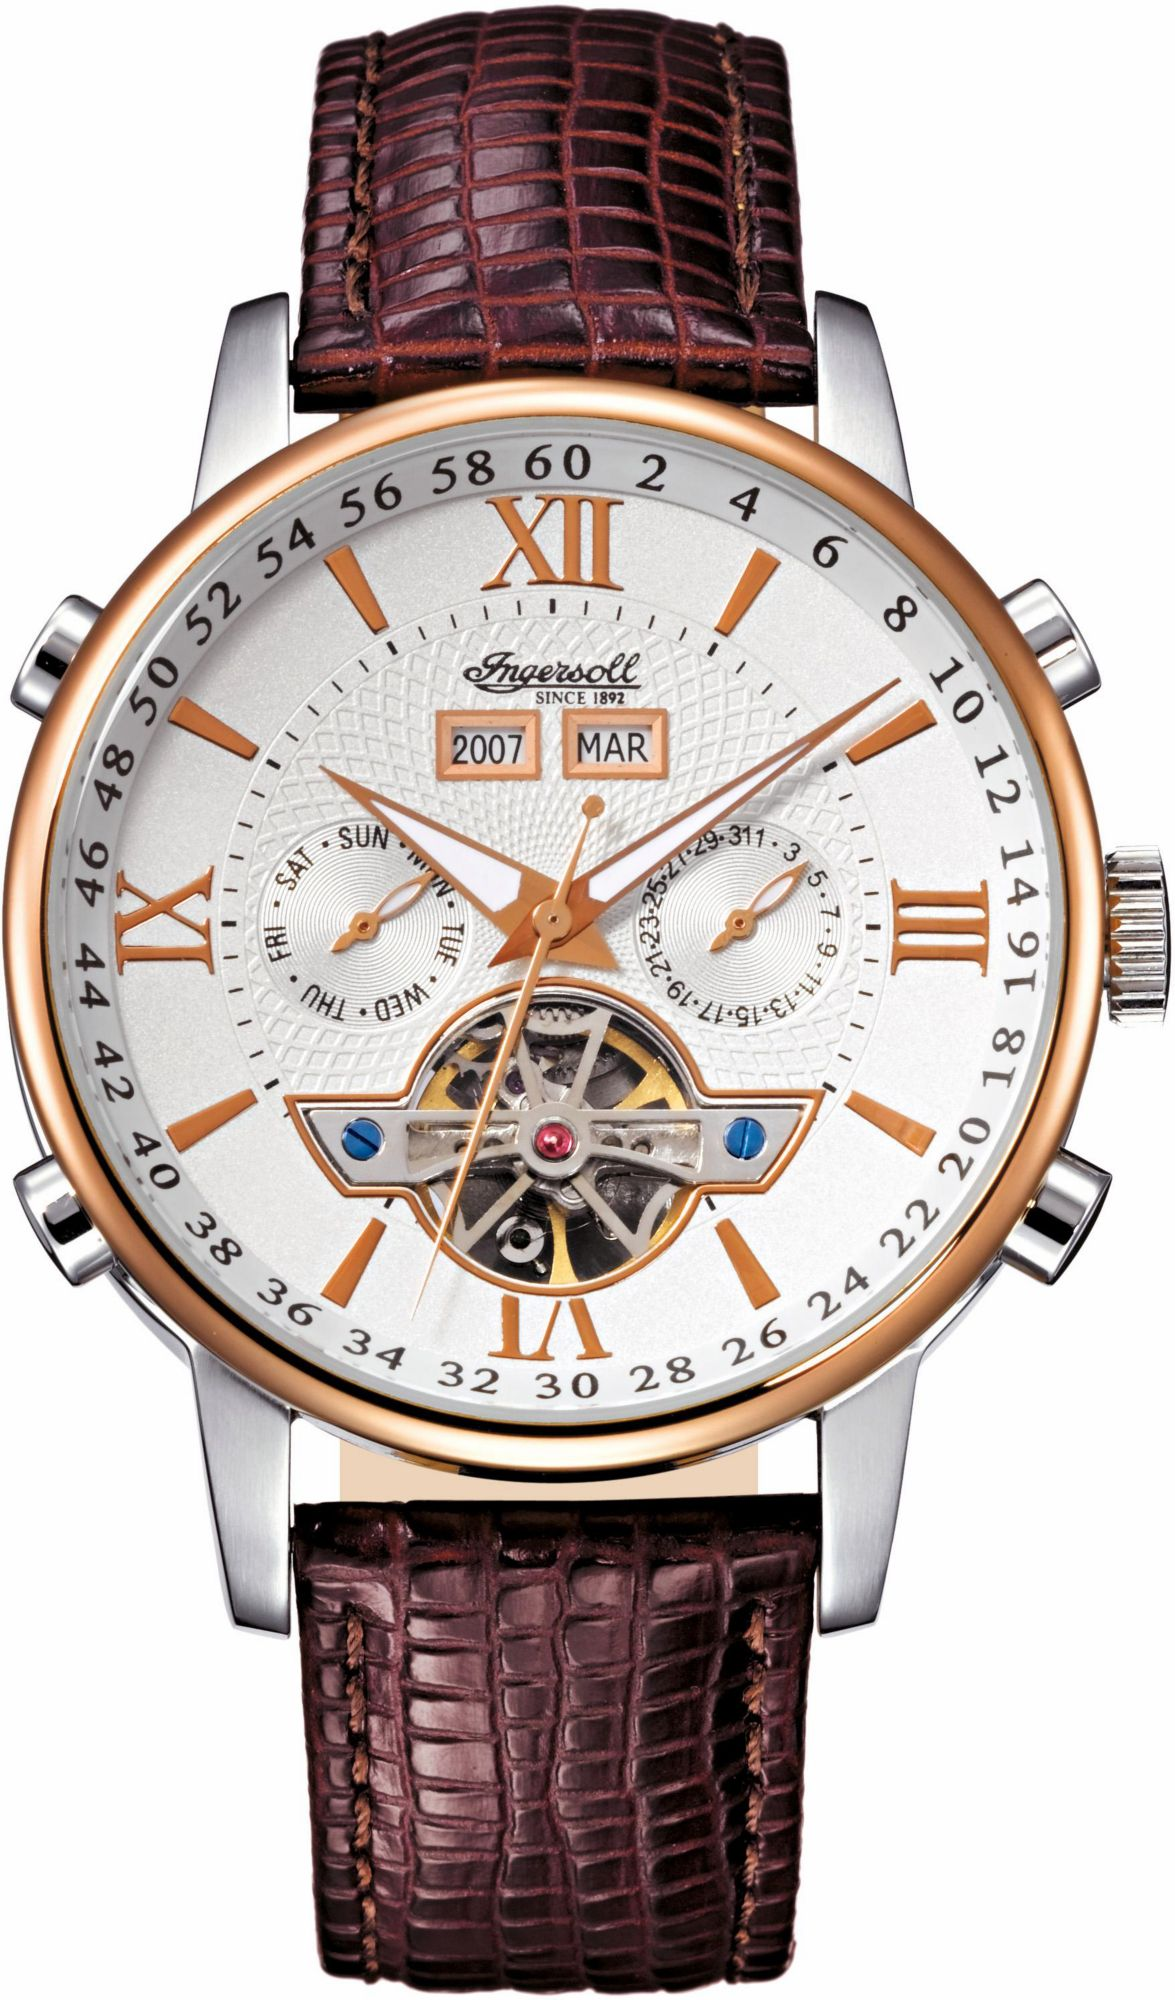 INGERSOLL Ingersoll Automatikuhr »Grand Canyon 2, IN4503RWH«